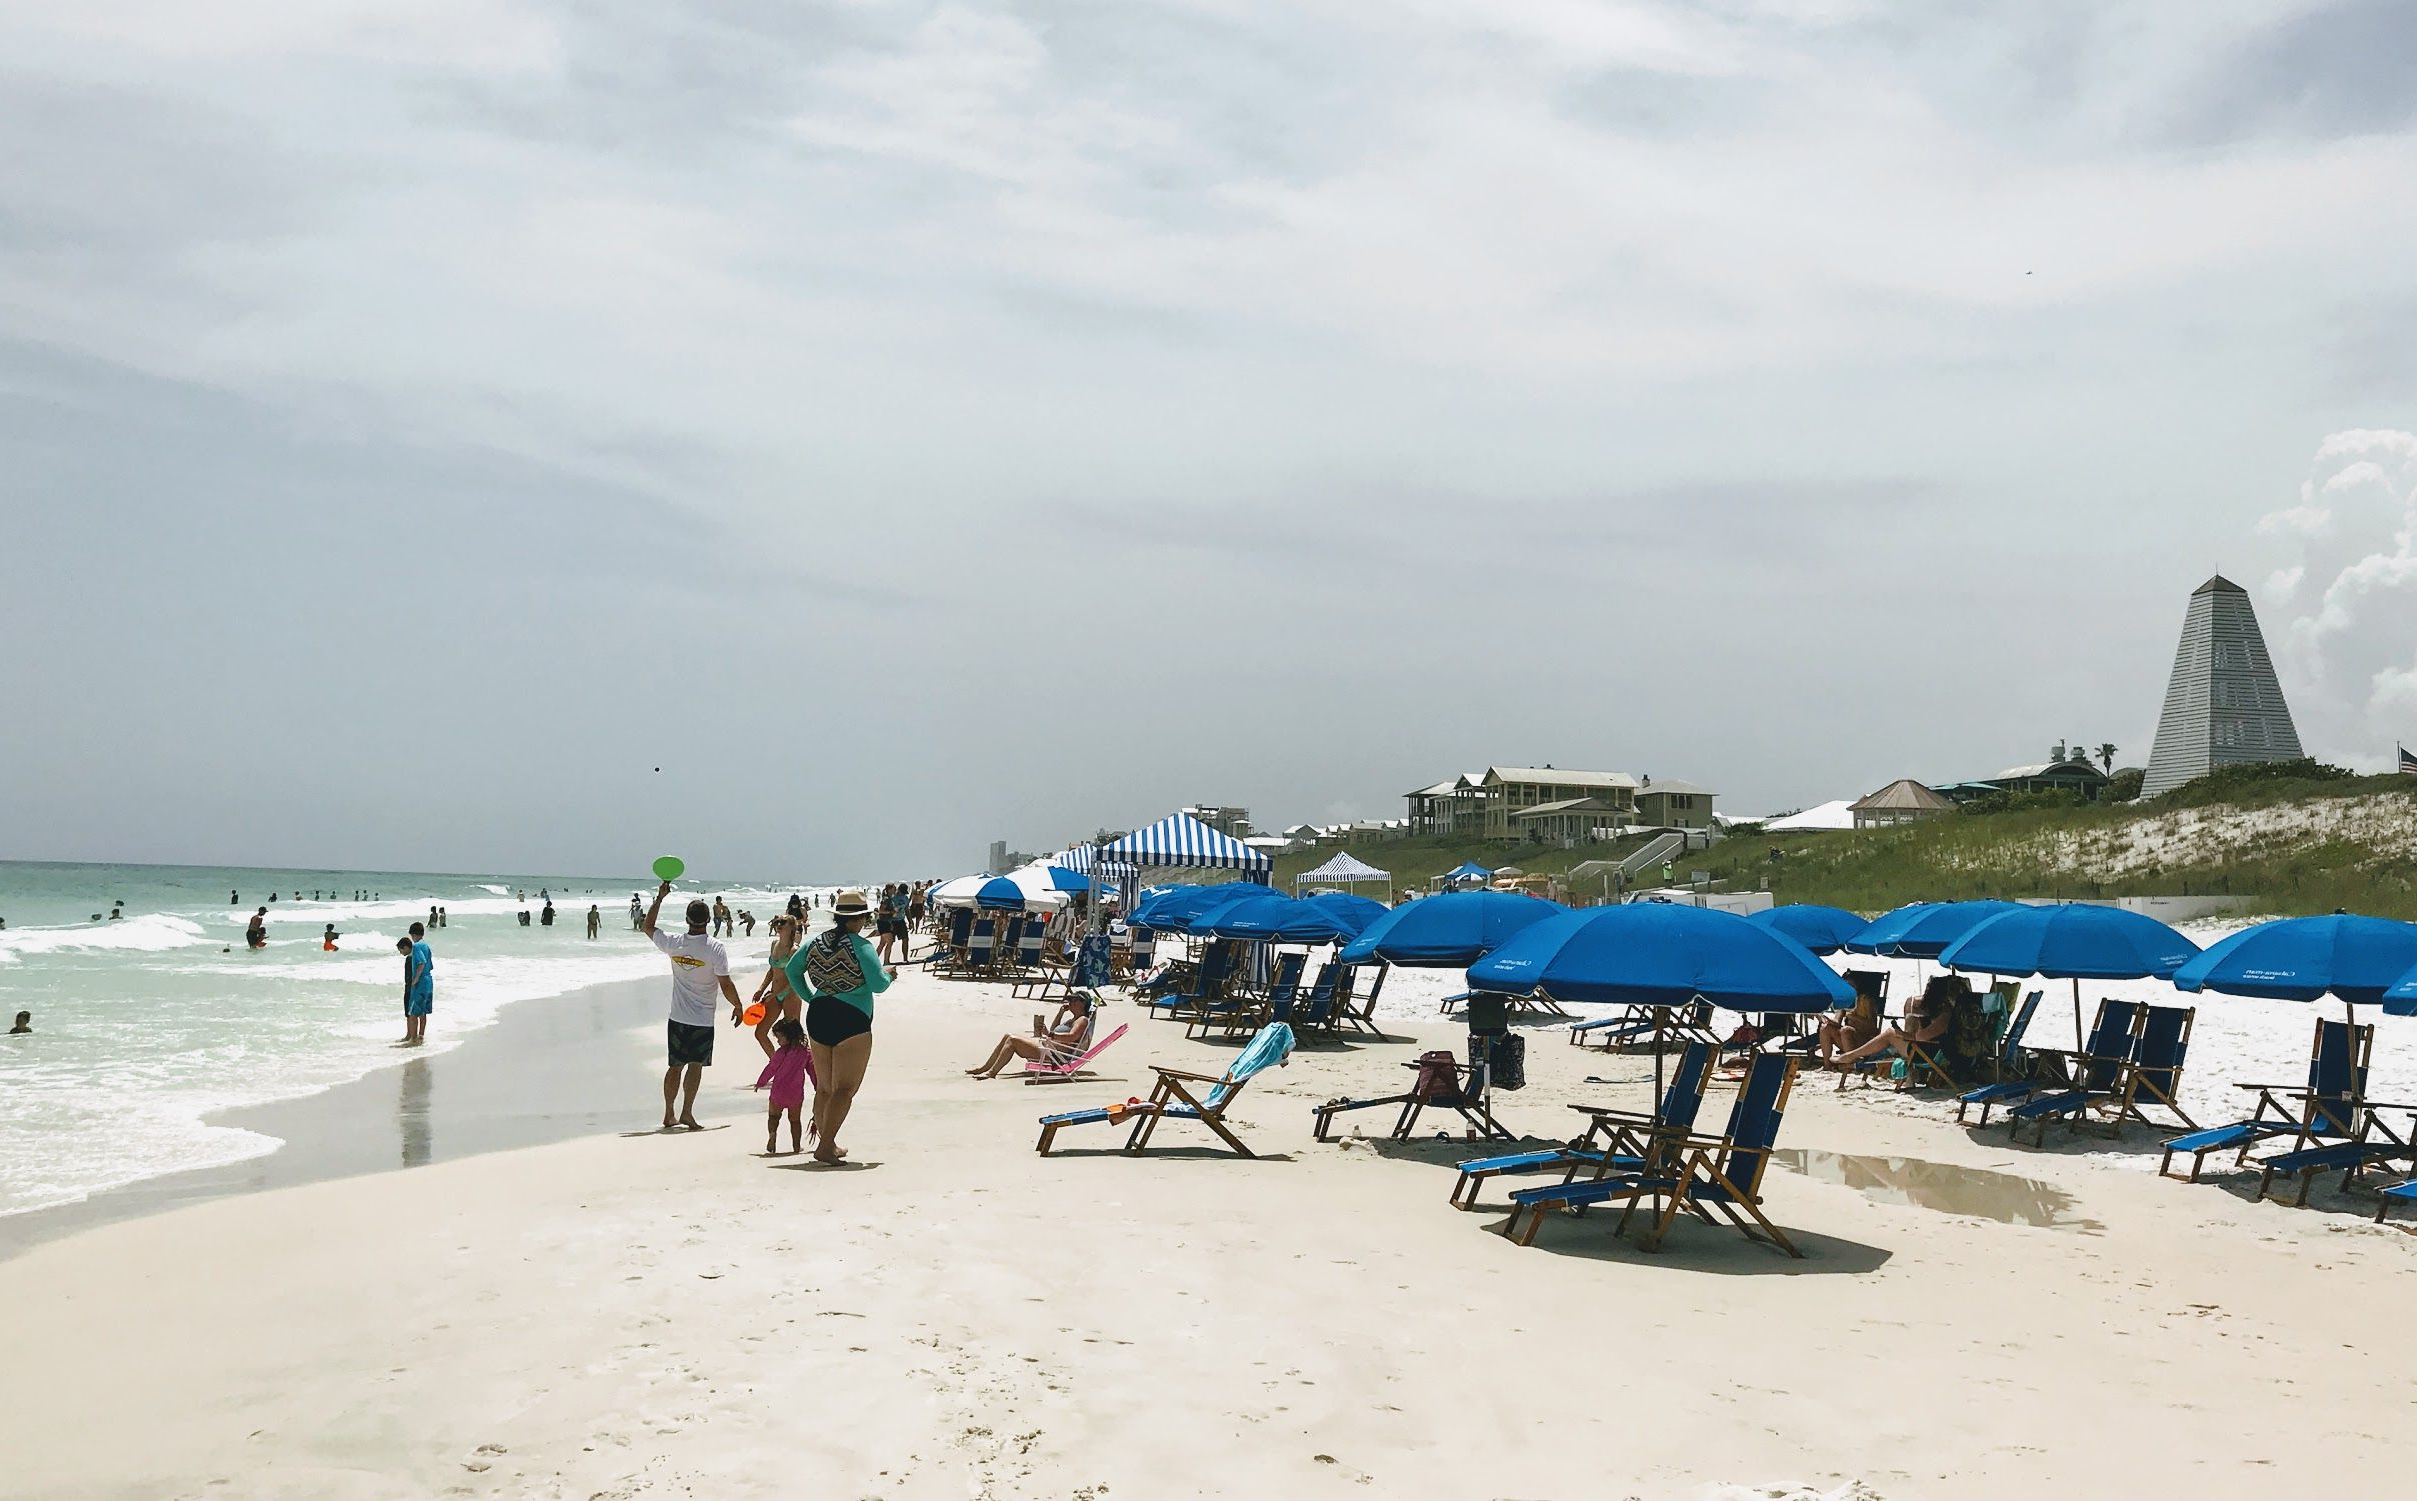 Seaside Florida Beaches Are Lined With Rental Beach Umbrellas With Newest Seaside Beach Umbrellas (View 18 of 20)